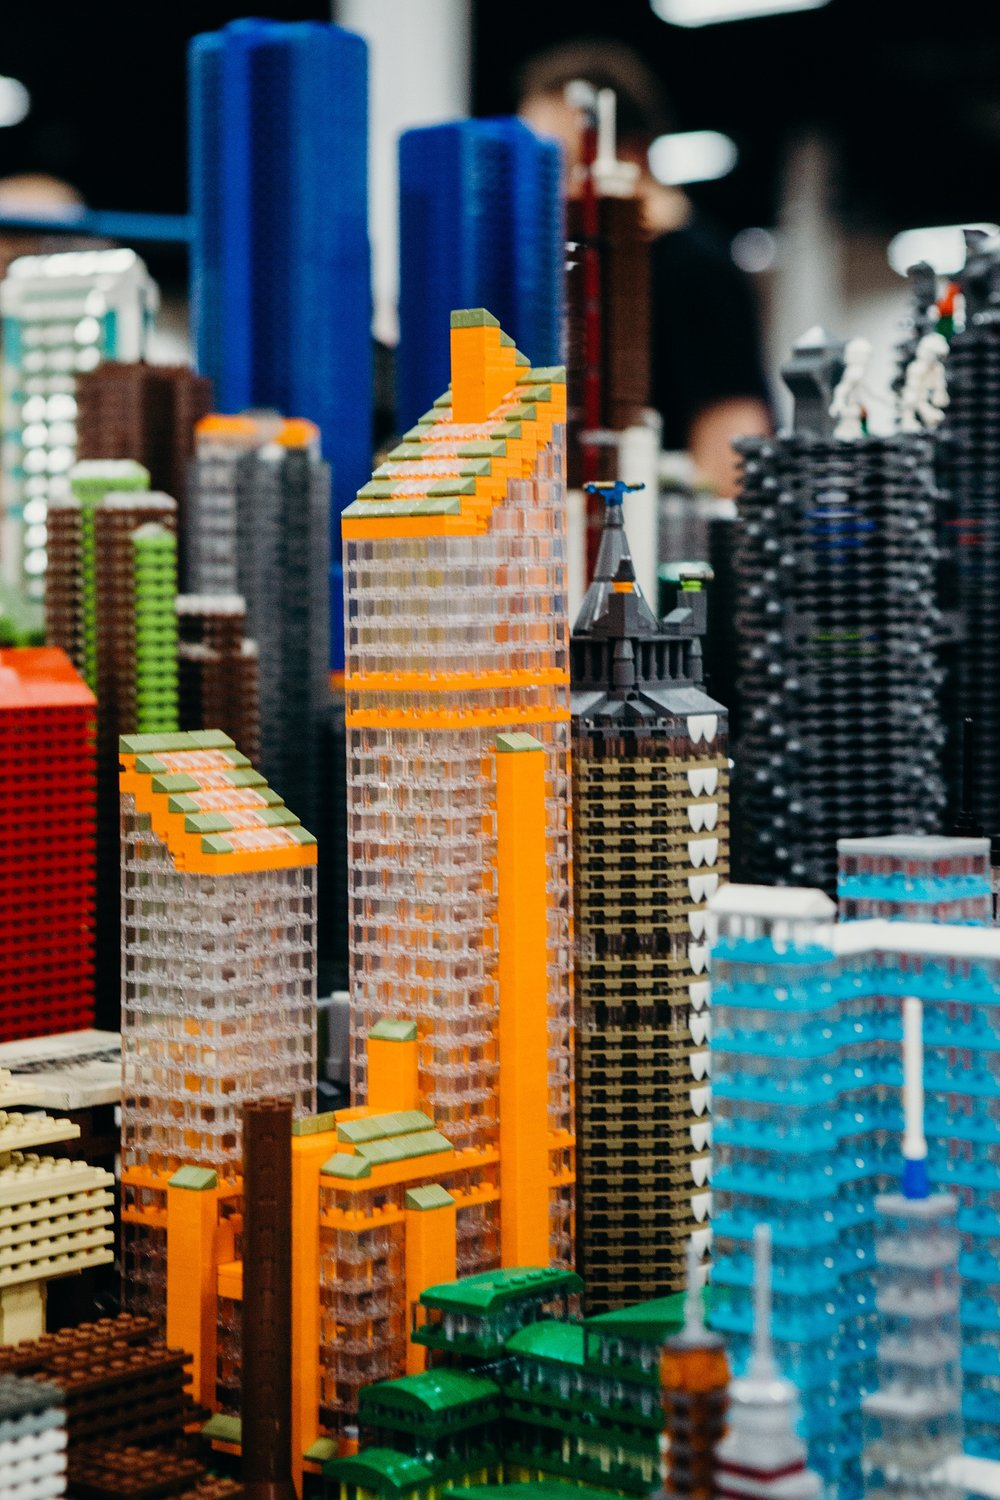 Joe_mac_Creative_Photography_Lego_Convention_Expo_Philadelphia__0019.jpg